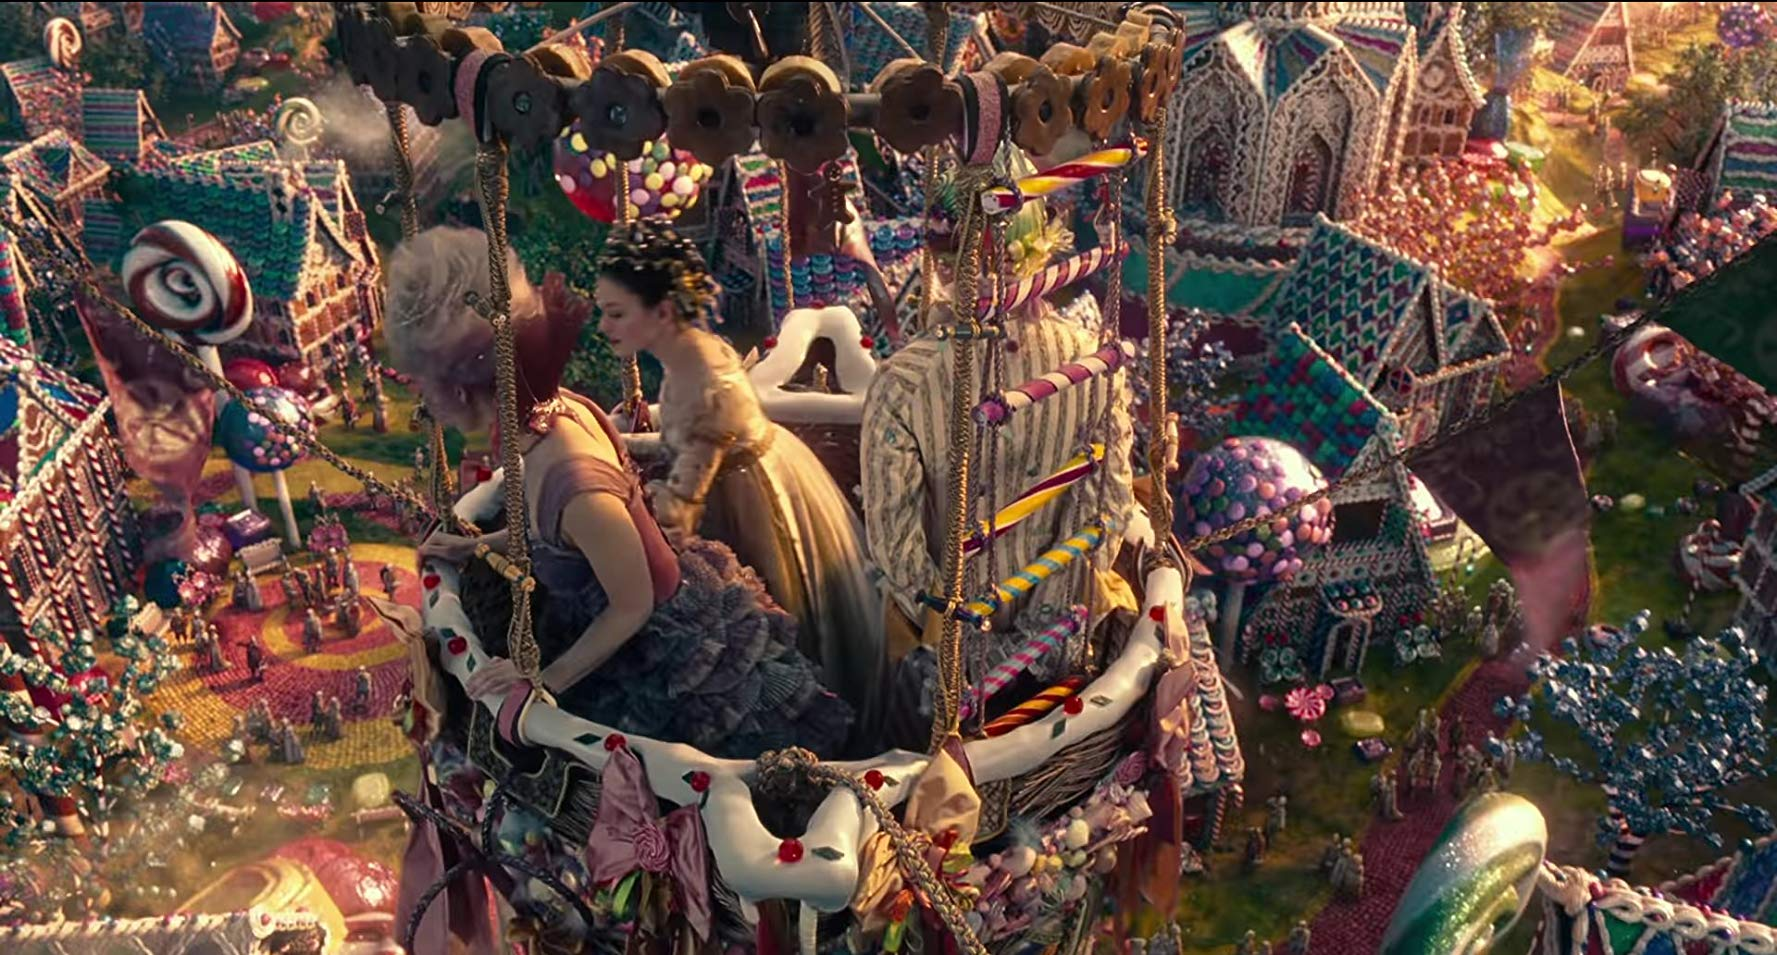 The Nutcracker And The Four Realms Ruthless Reviews